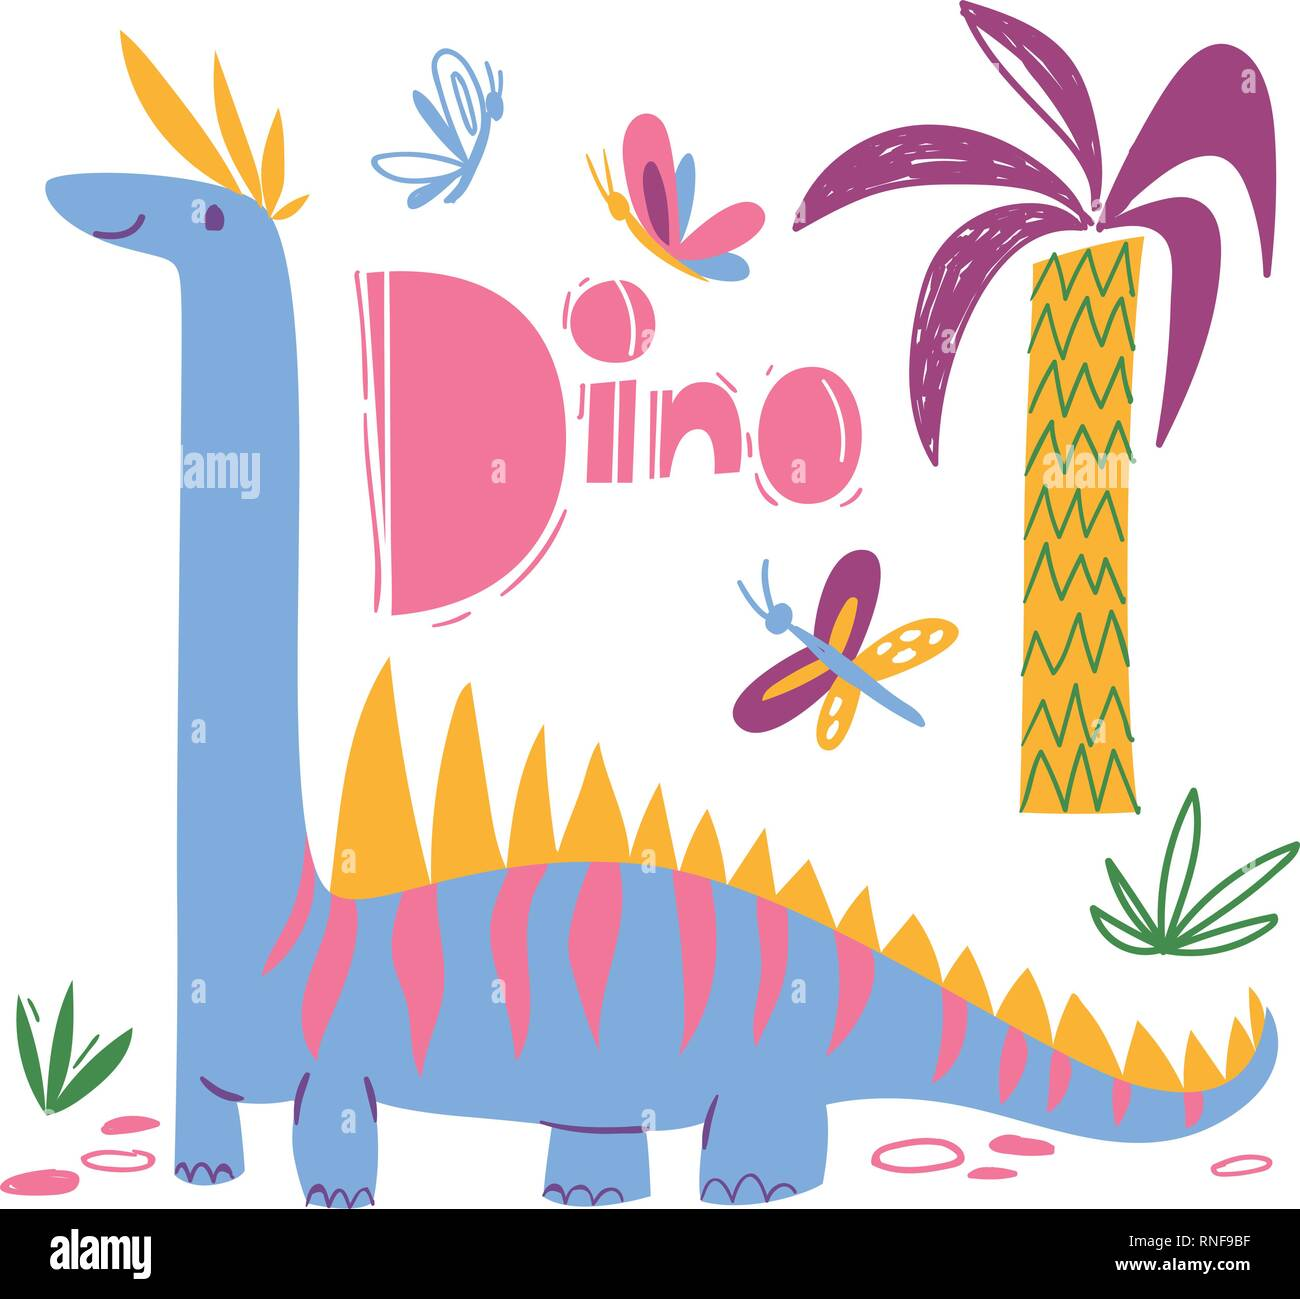 Cool dino poster with funny dinosaur and dino text - Stock Image